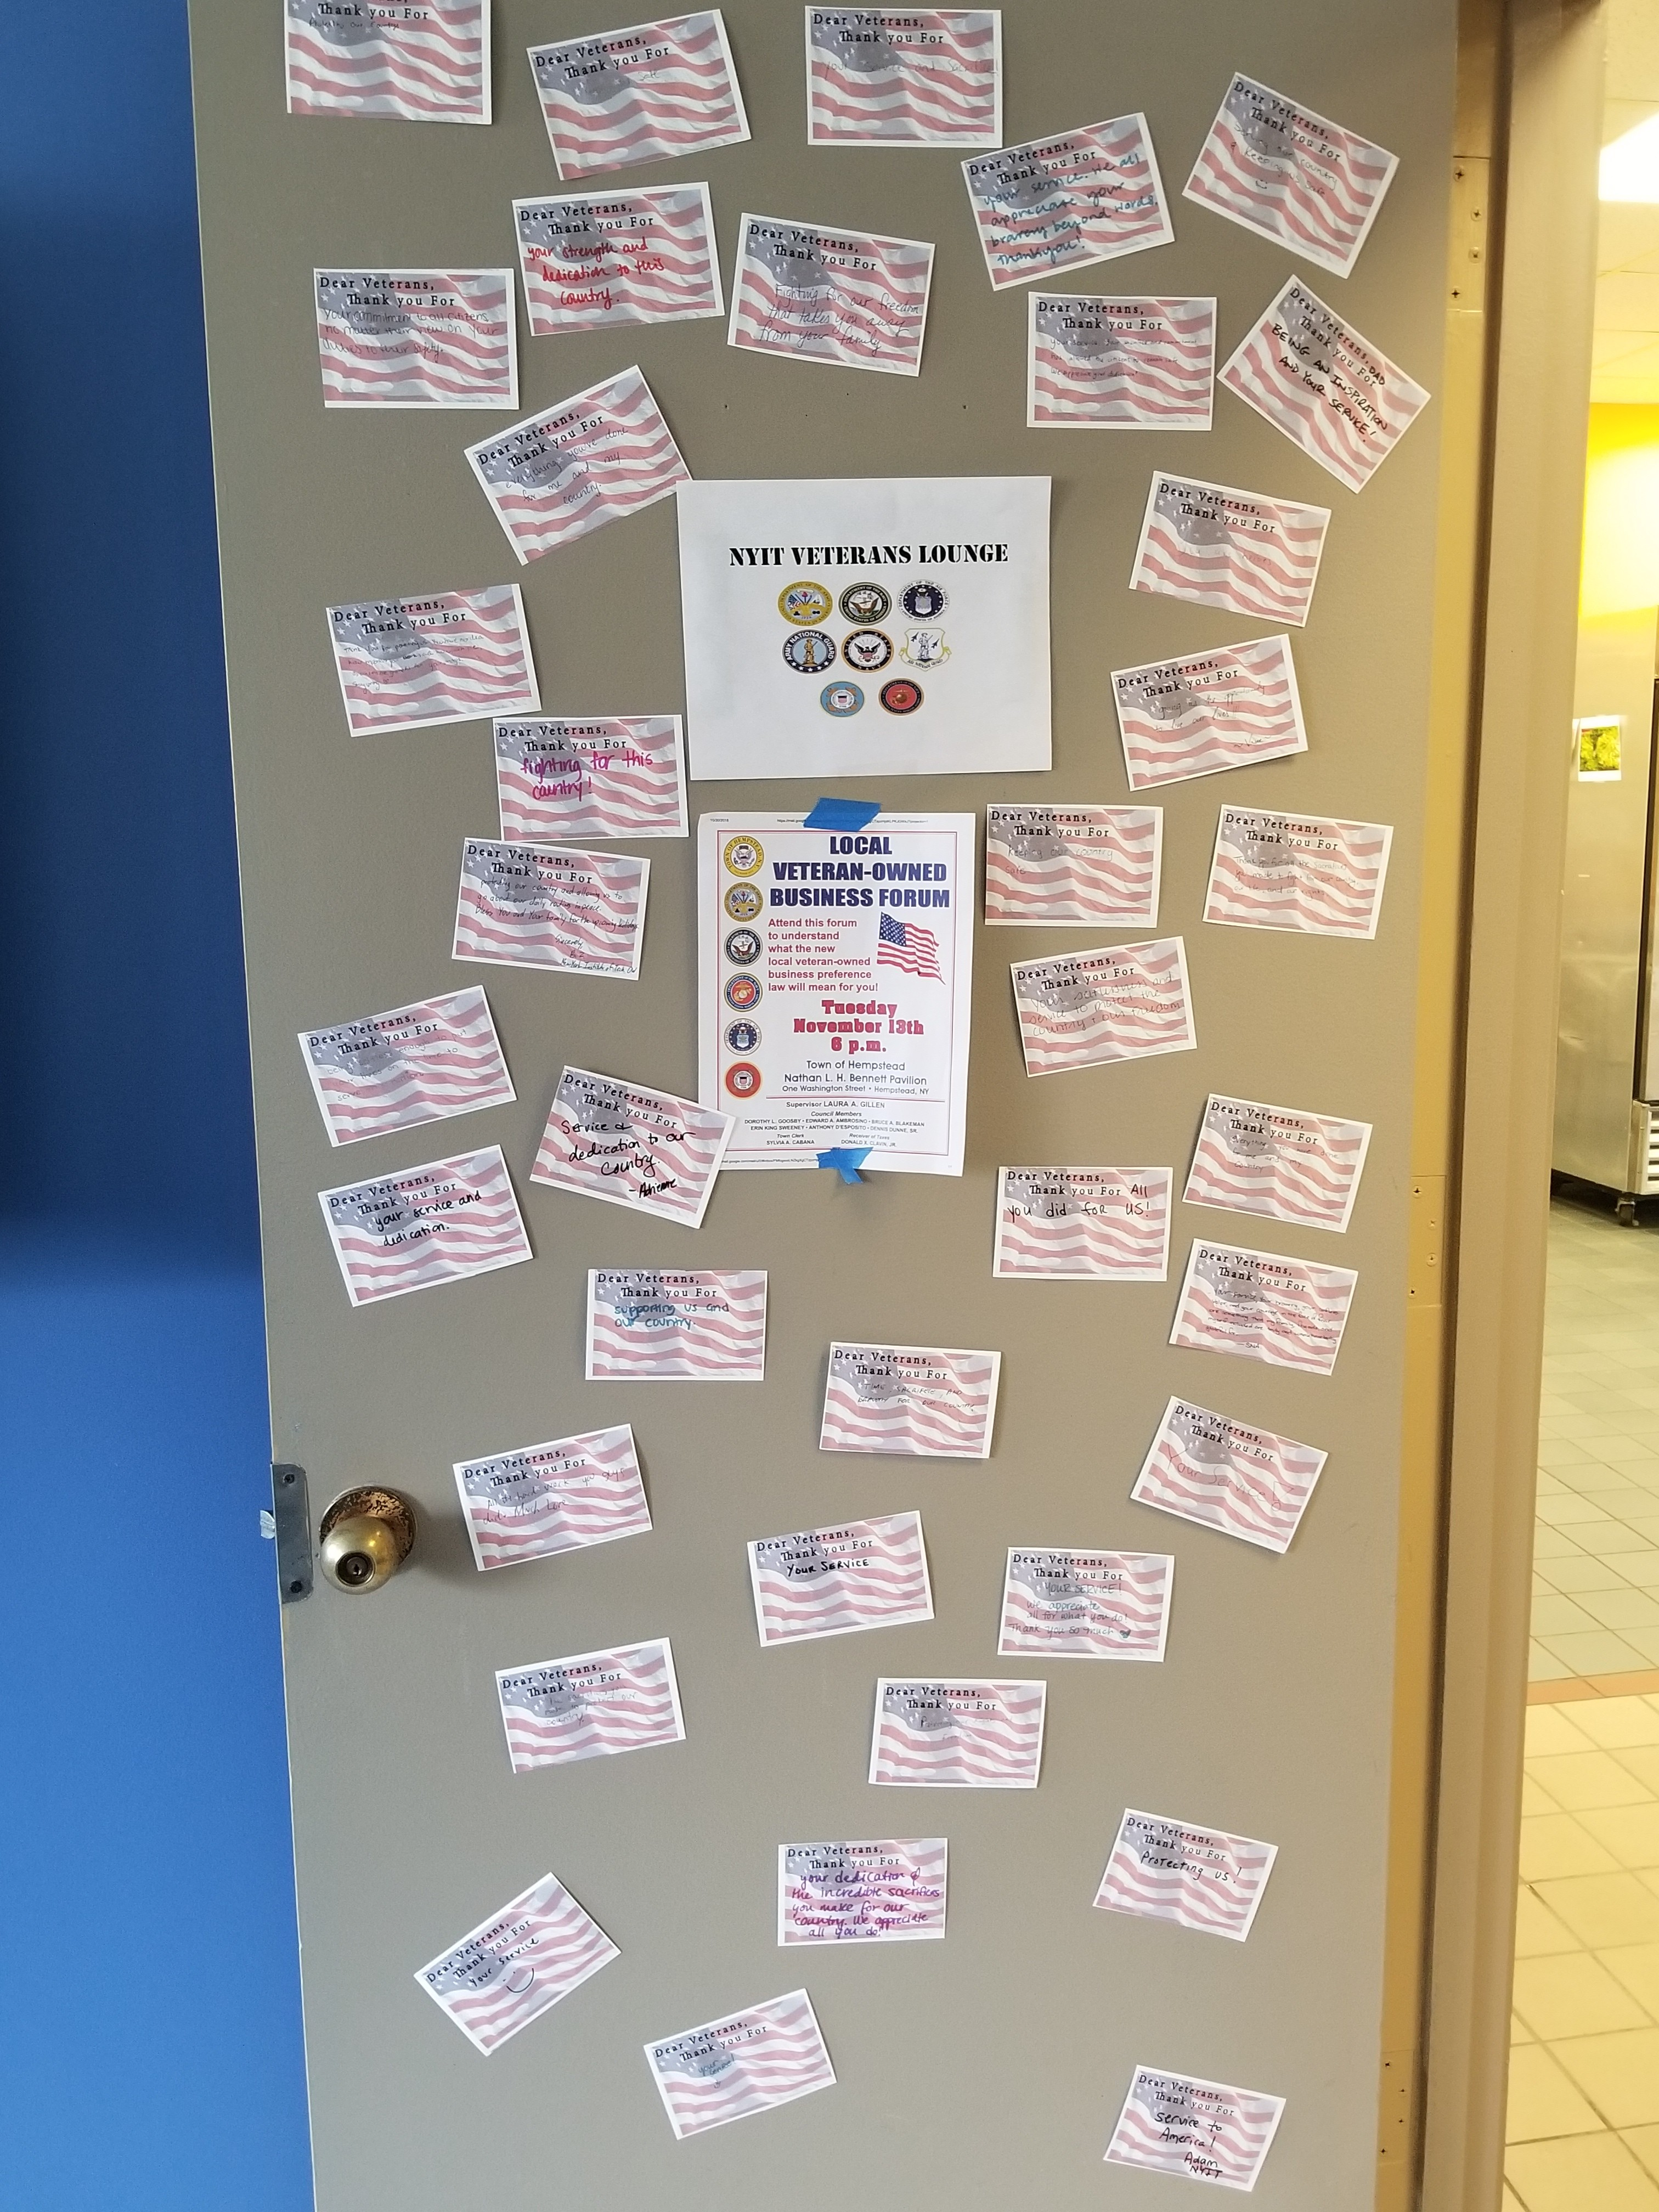 NYIT Student Veterans were provided cards of support by the Office of Student Engagement at the NYC Campus.